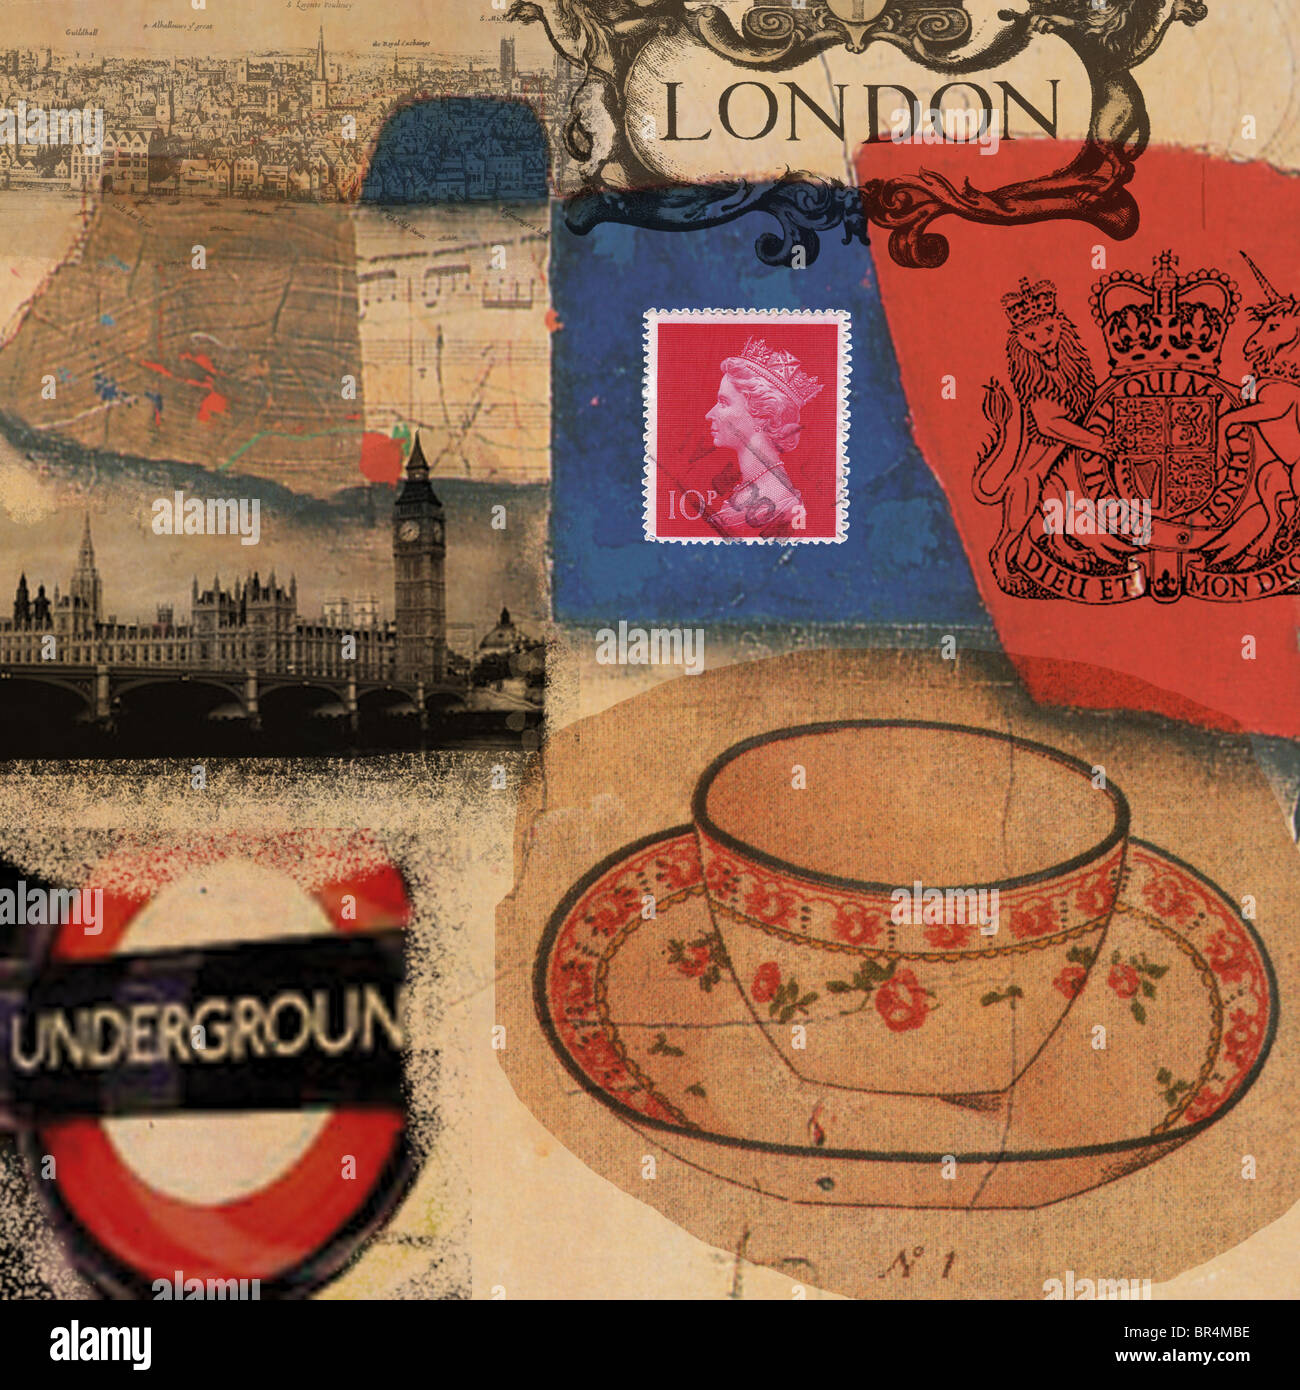 The different attractions of London captured in a poster - Stock Image